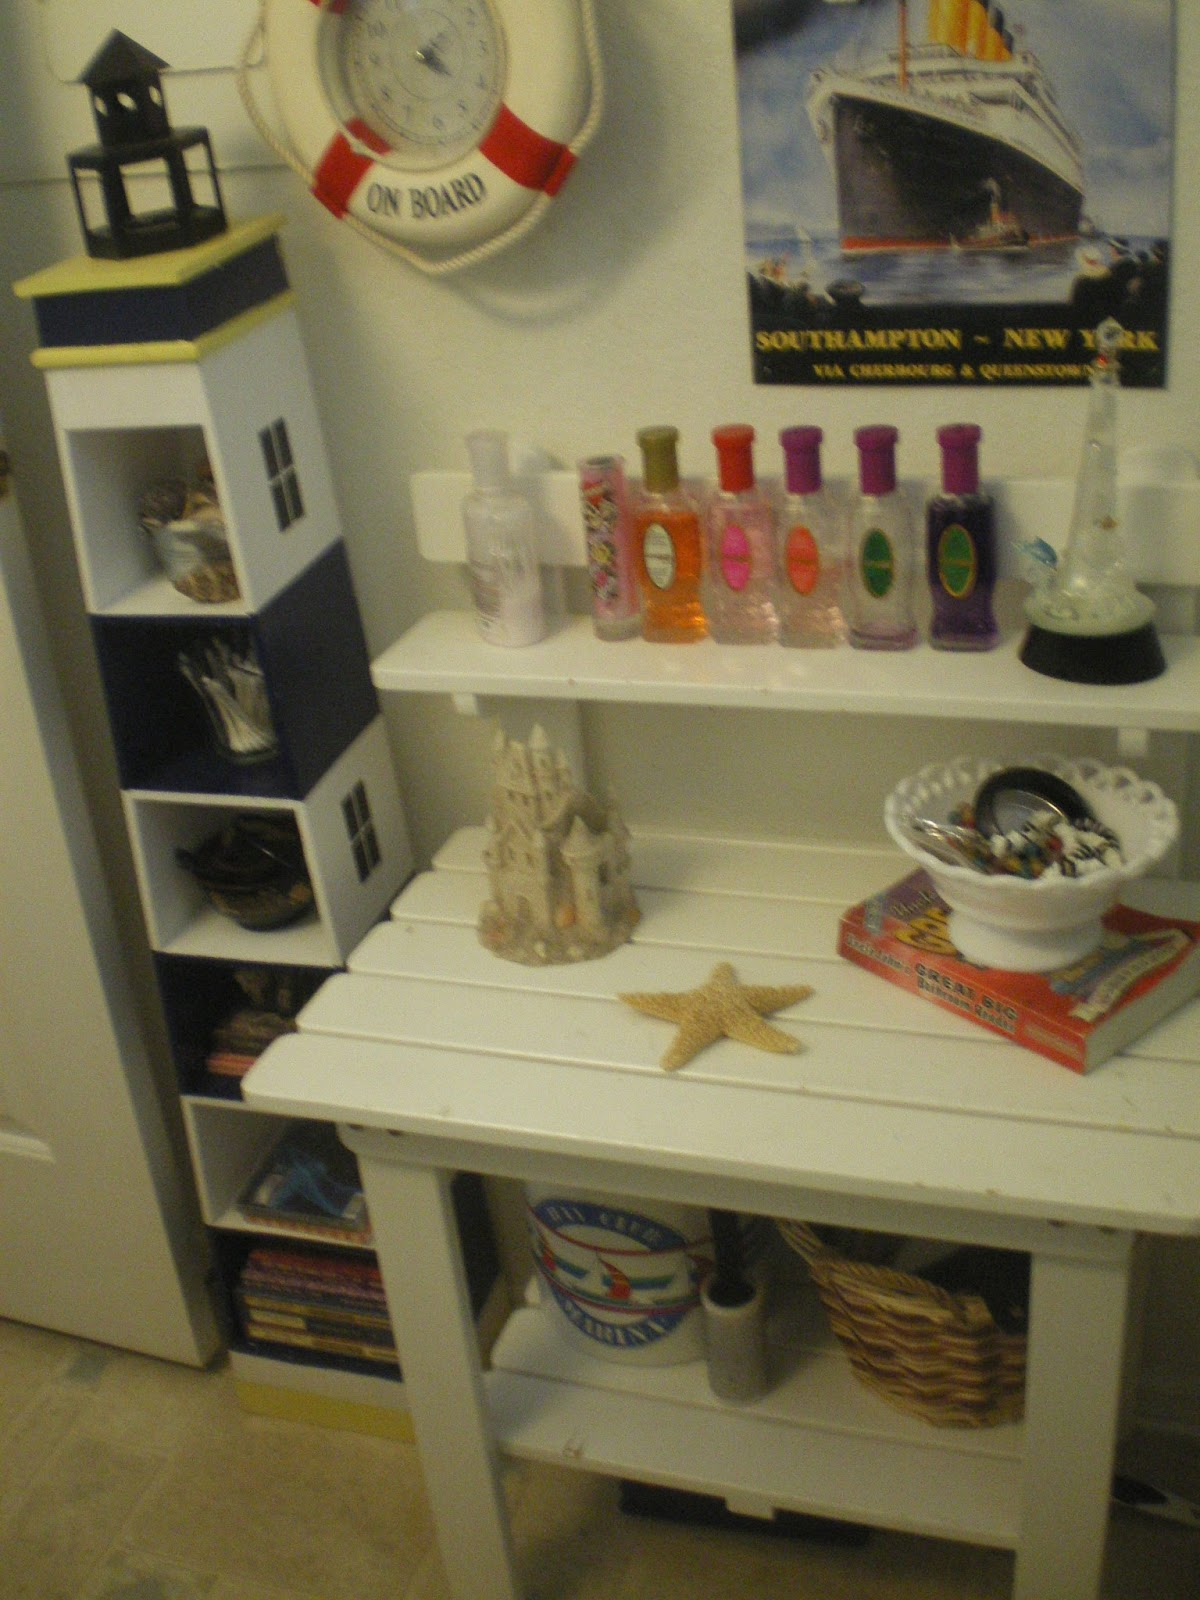 After This Little Bench And Light House Shelf Added Much Needed Storage